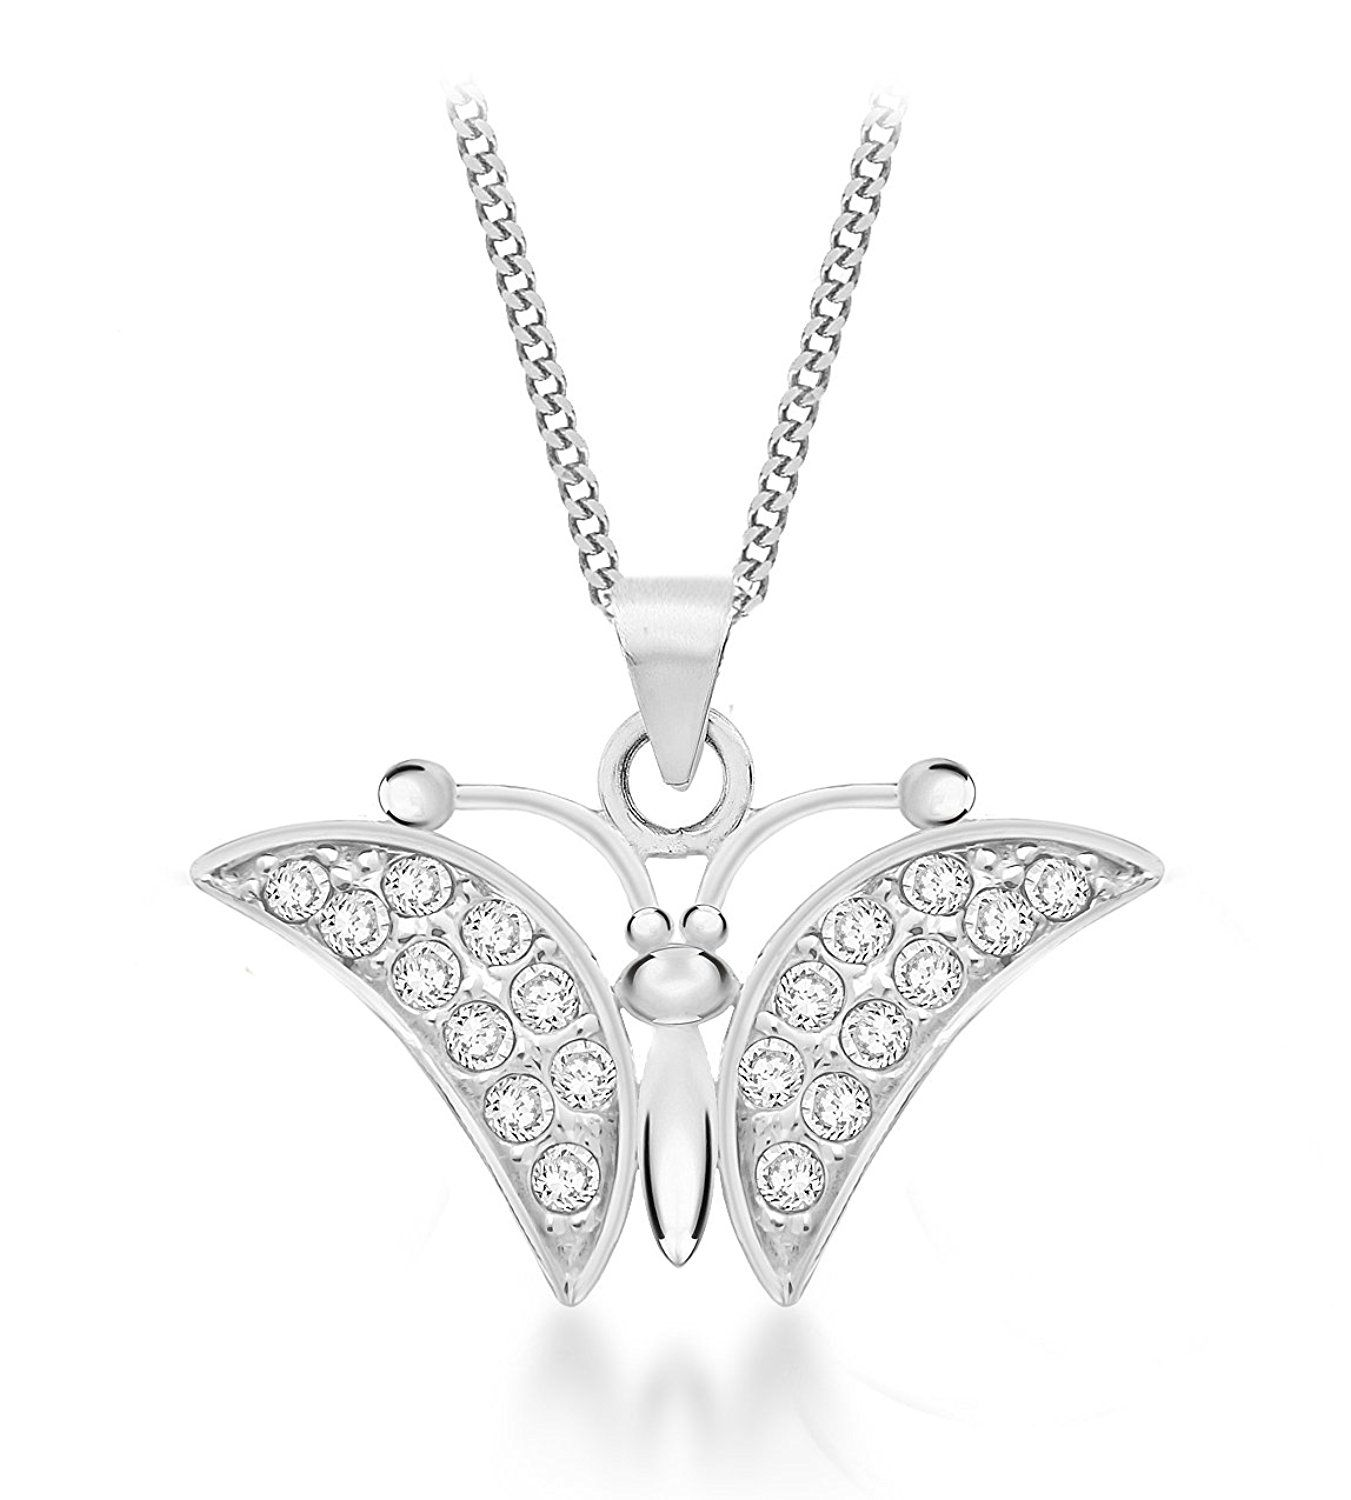 Tuscany Silver Sterling Silver Cut Out Butterfly Pendant on Chain Necklace of 46cm/18 5lK0g